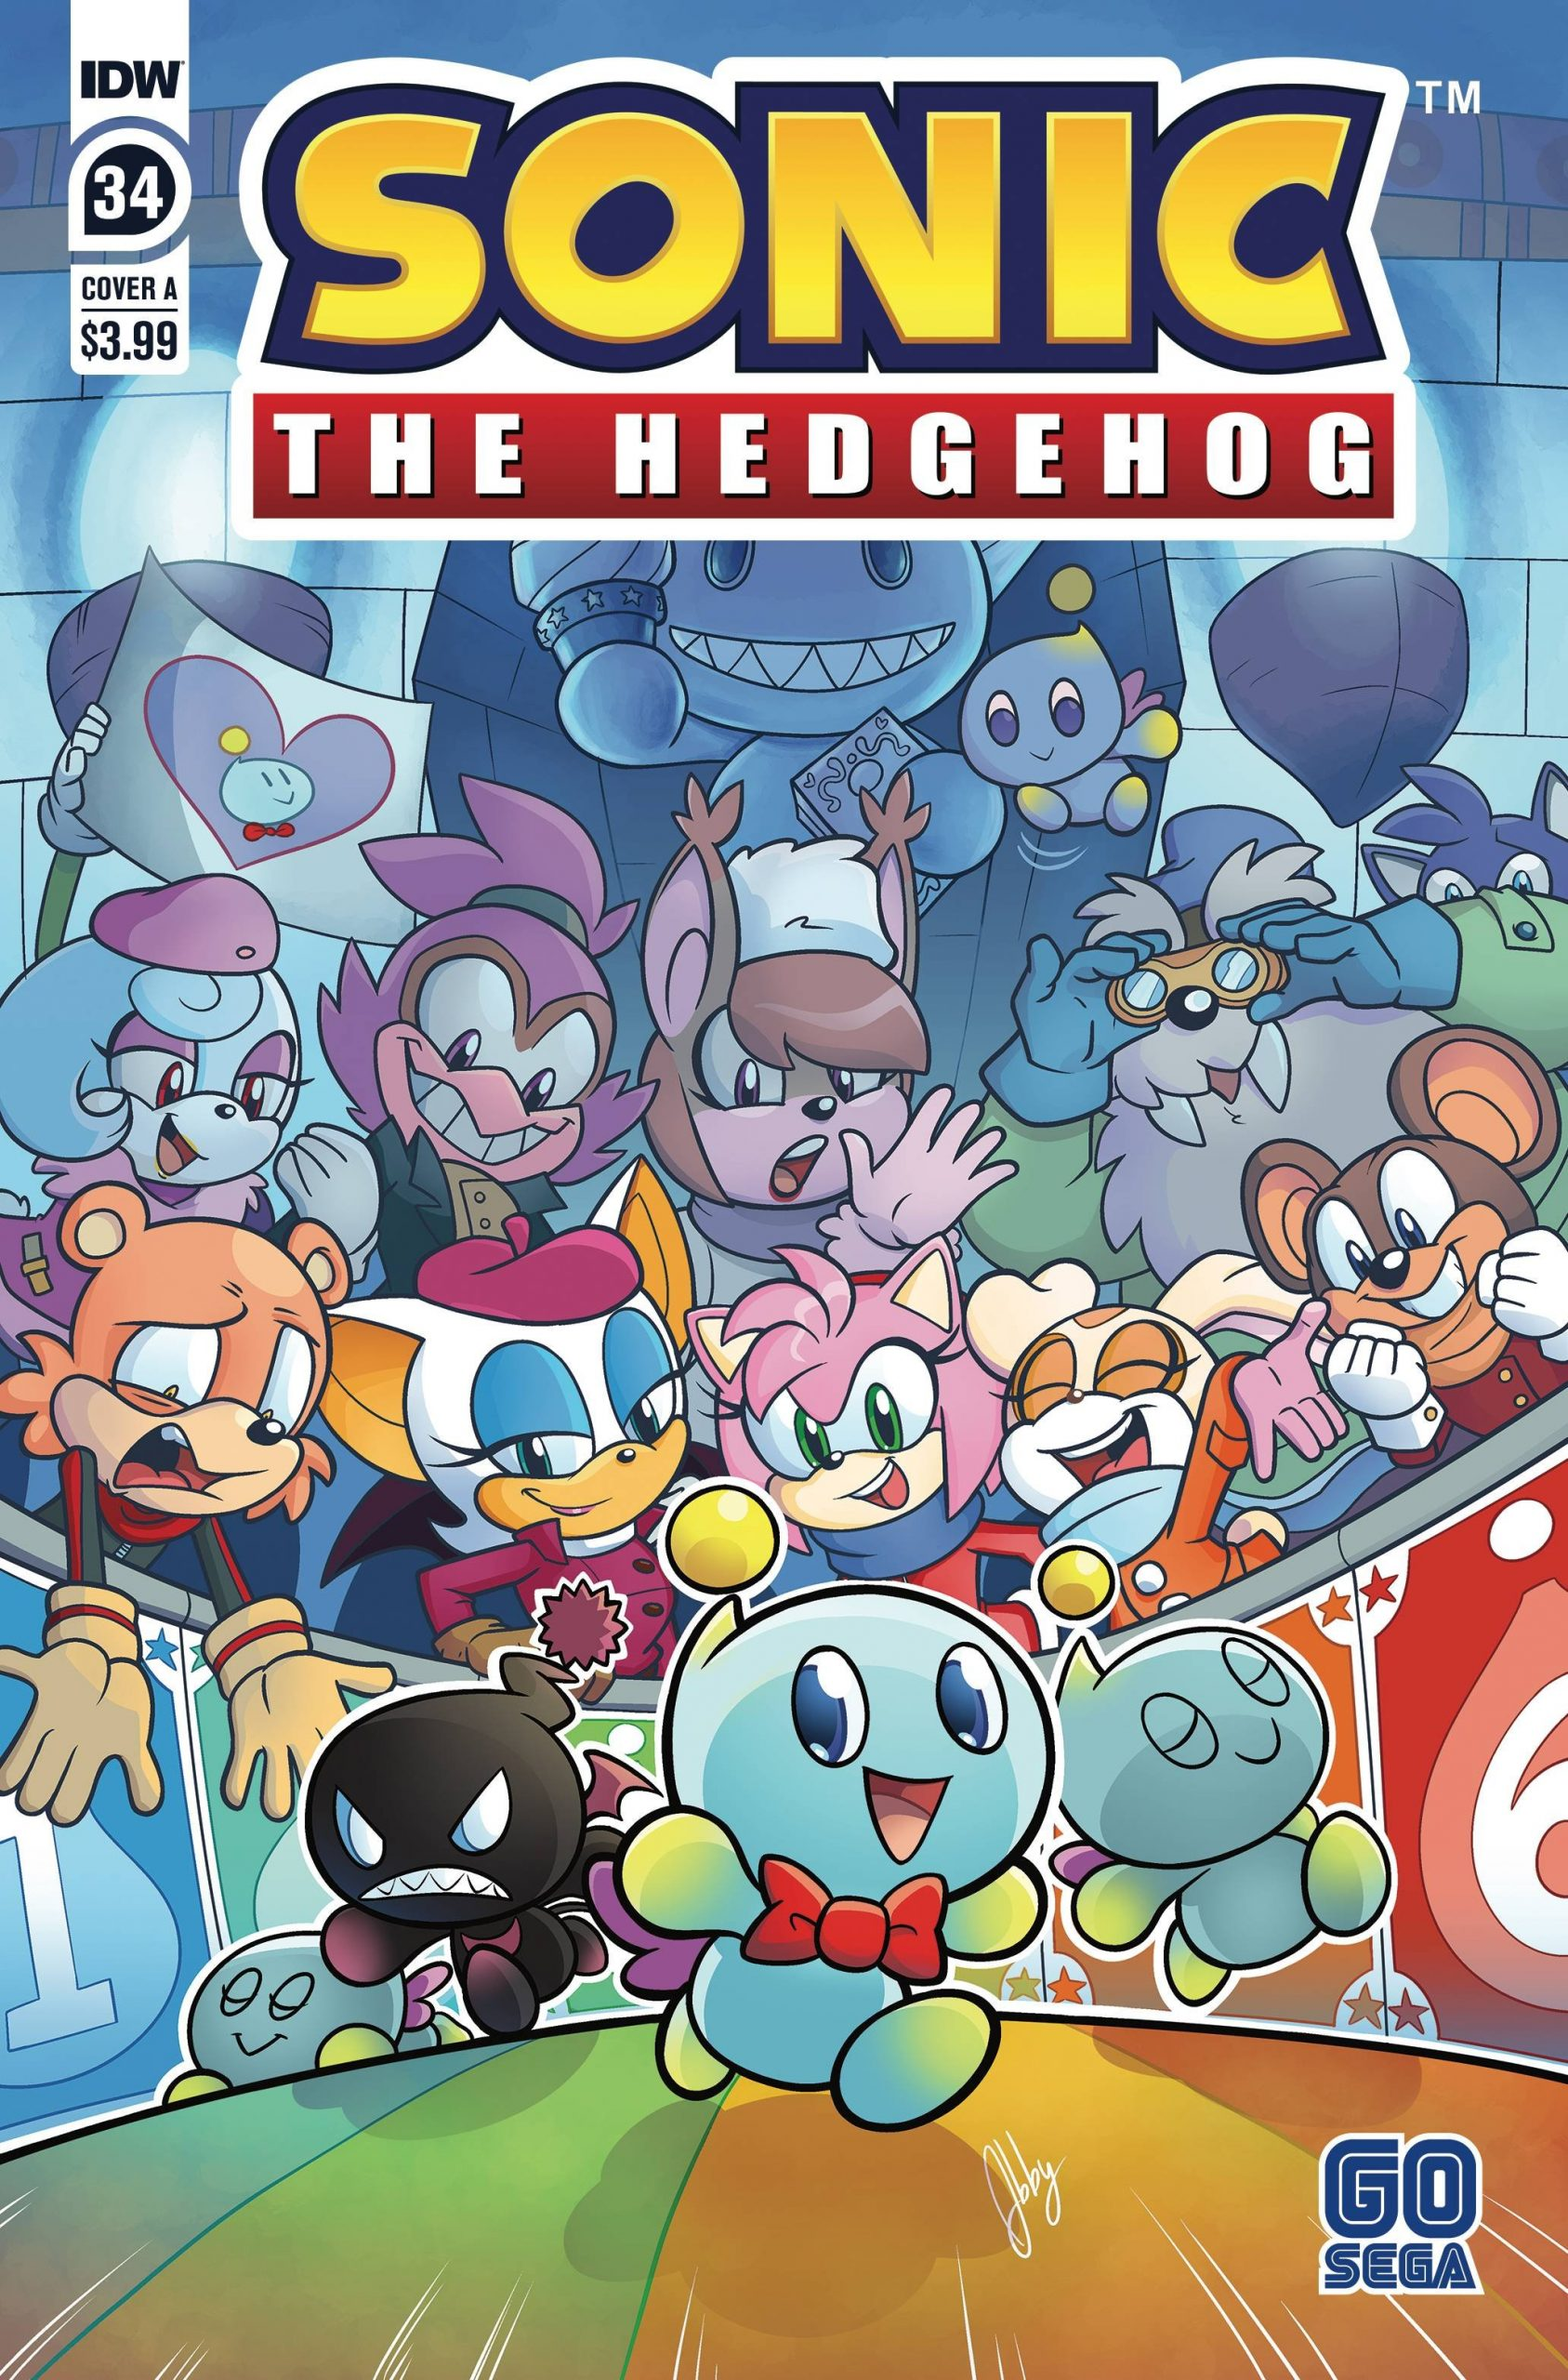 Sonic The Hedgehog #34 Cover A